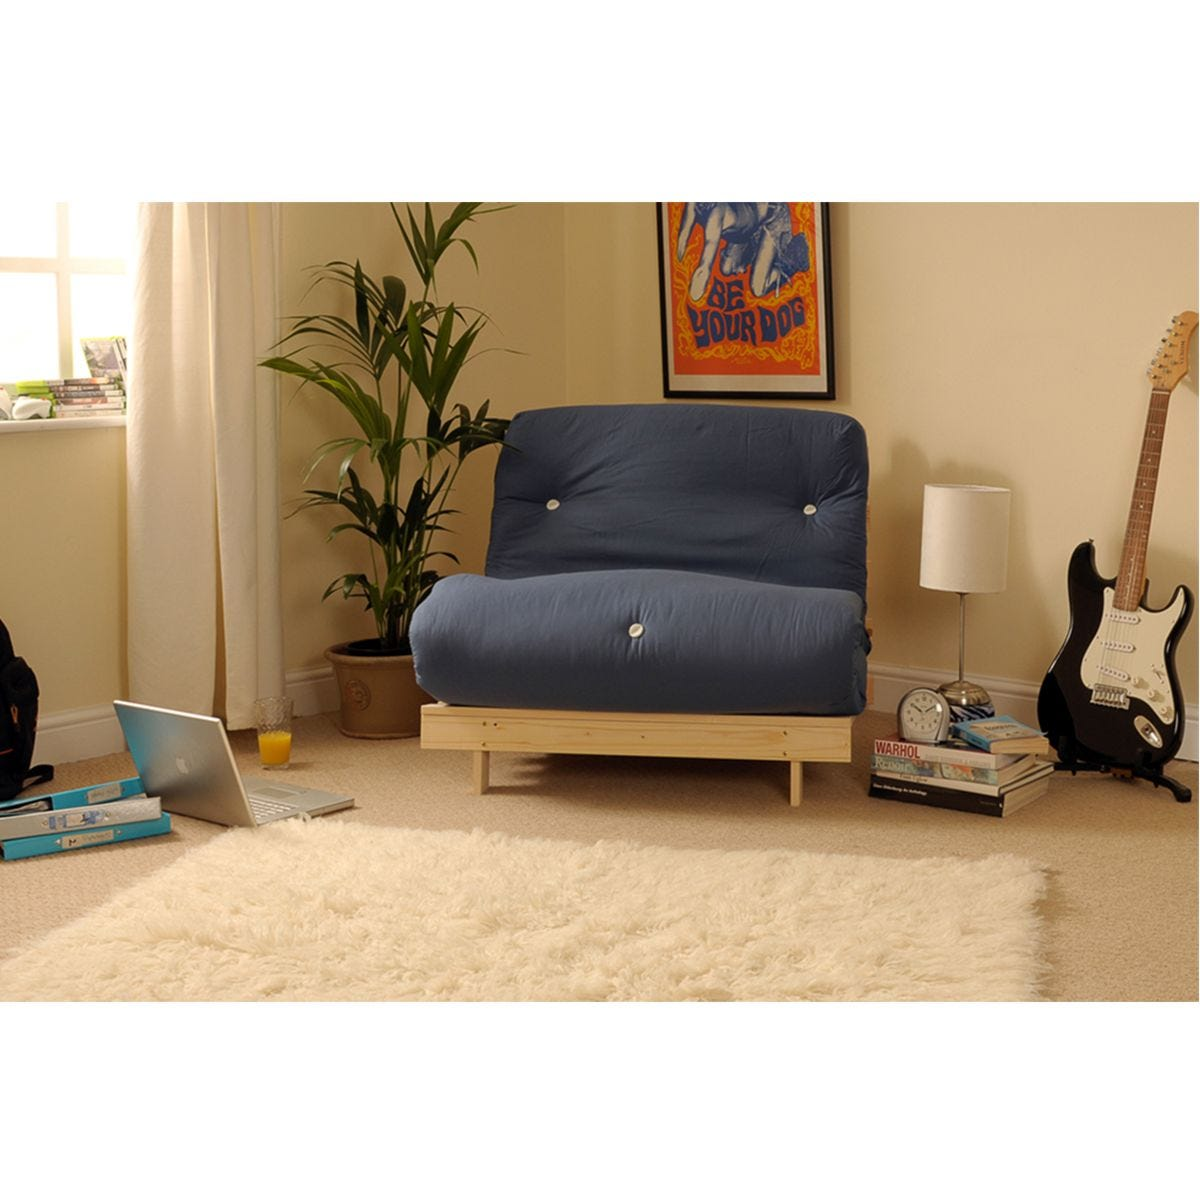 Albury Small Single Sofa Bed Set With Tufted Mattress - Navy